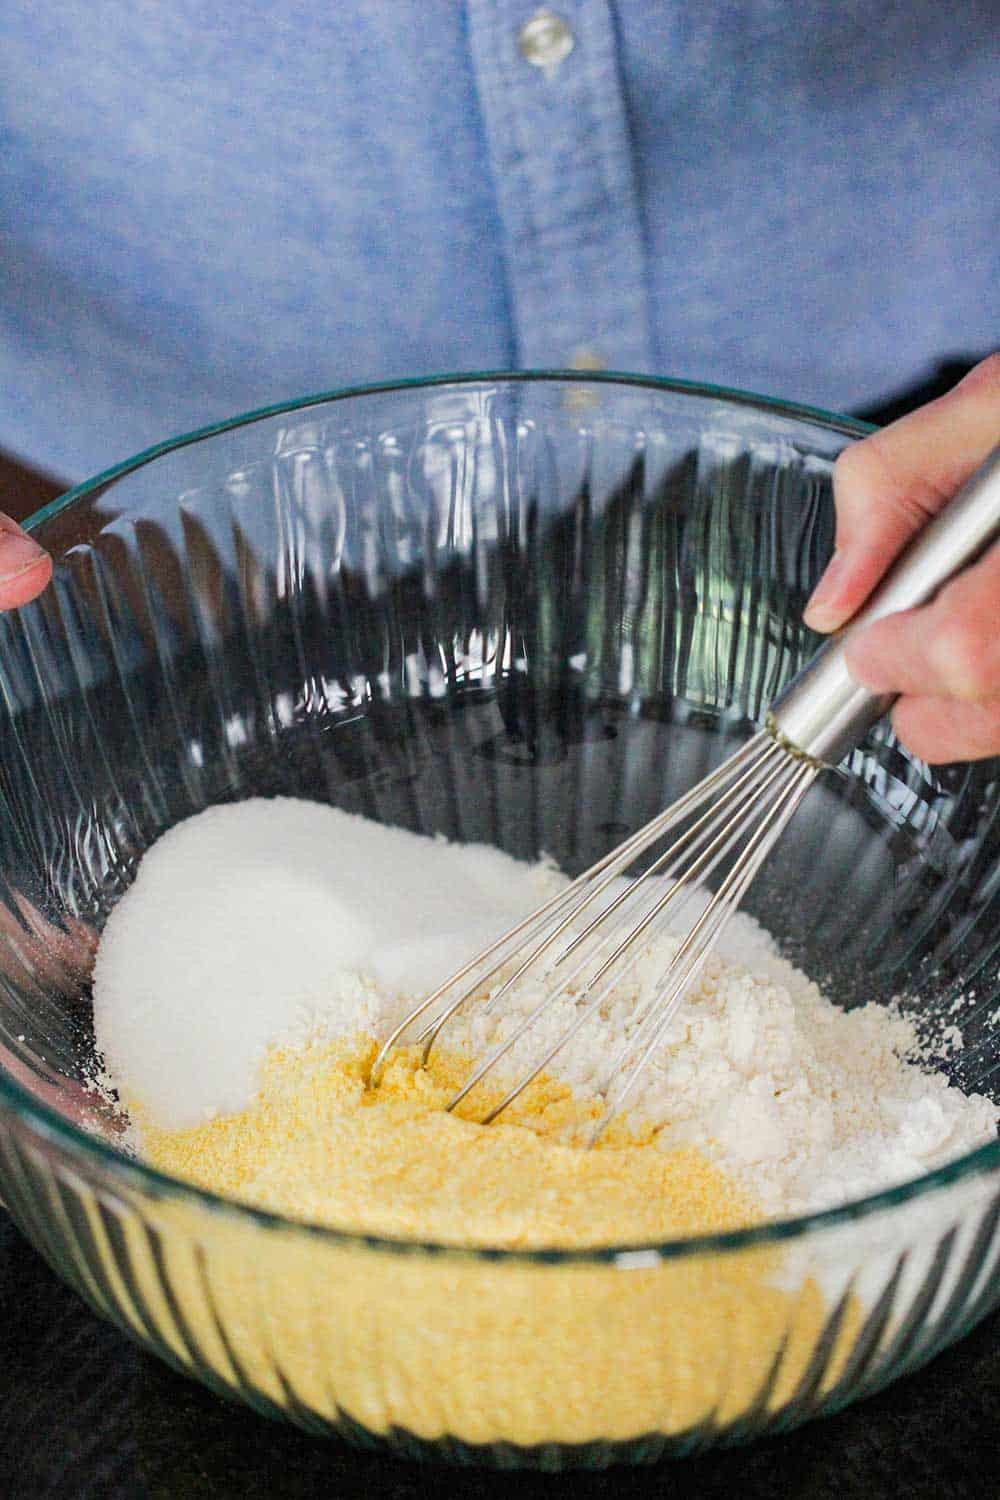 A hand using a whisk to combine cornmeal, flour, salt and baking powder in a large glass bowl.